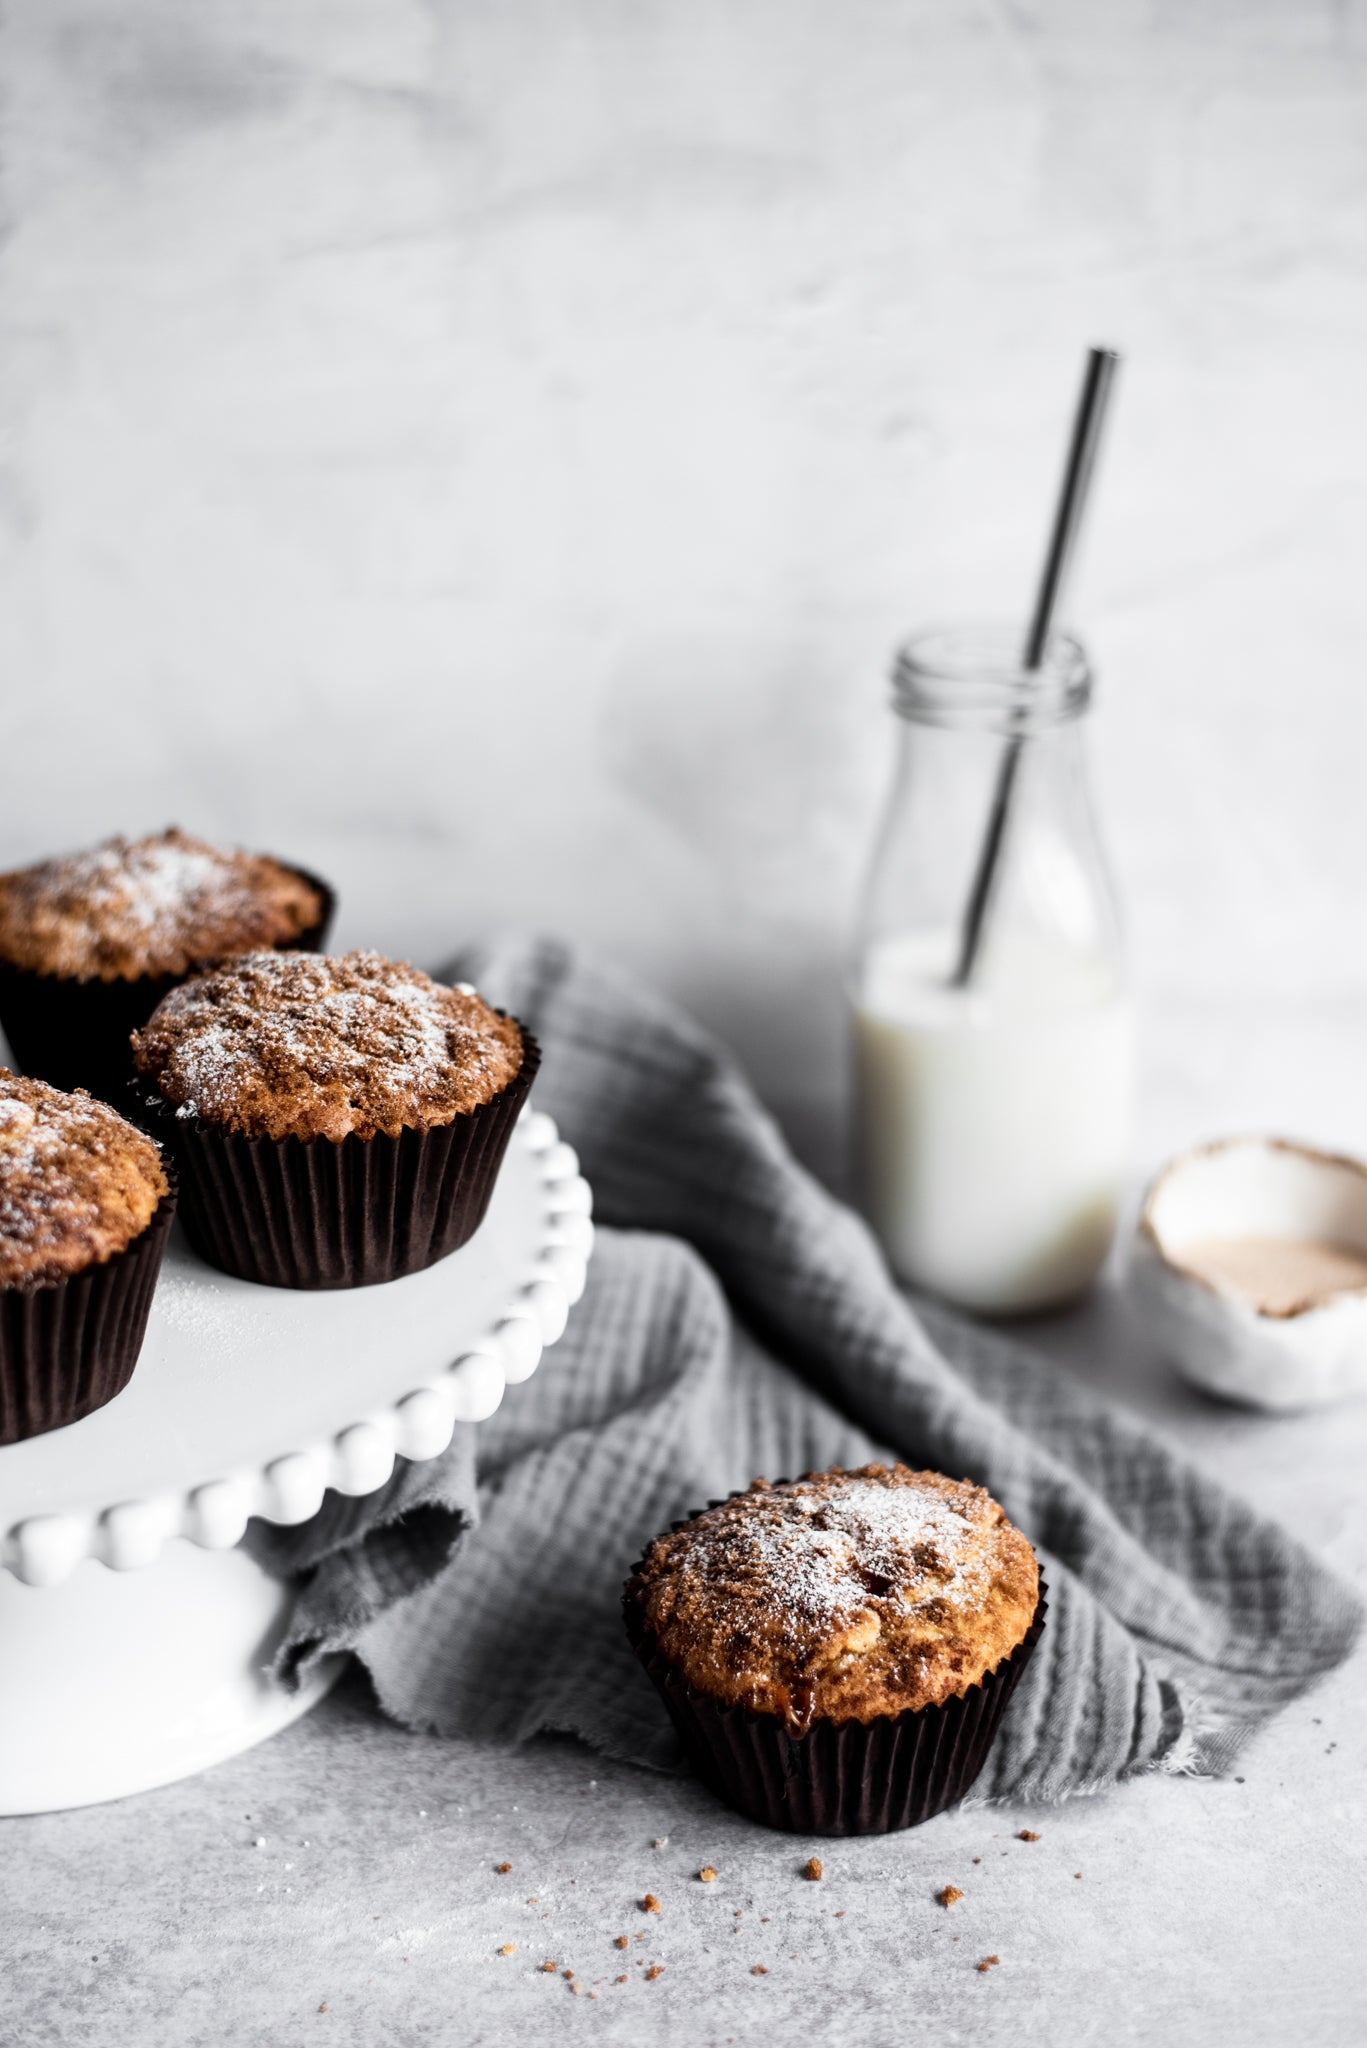 Toffee-And-Apple-Sauce-Muffins-WEB-RES-3.jpg